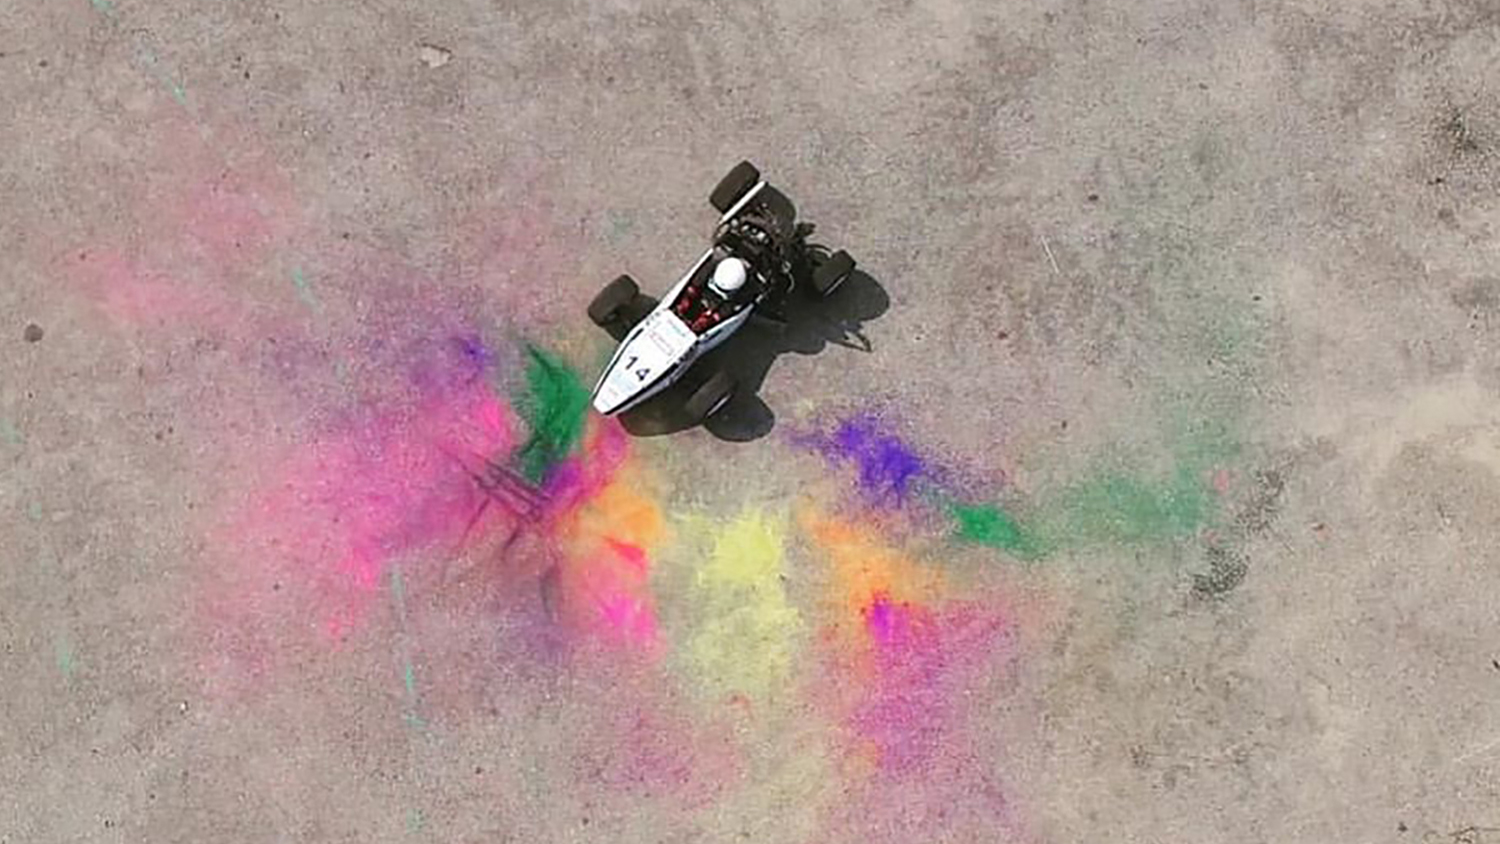 """The photo """"testing + holi"""" shows an engineering project centered in colorful powder."""